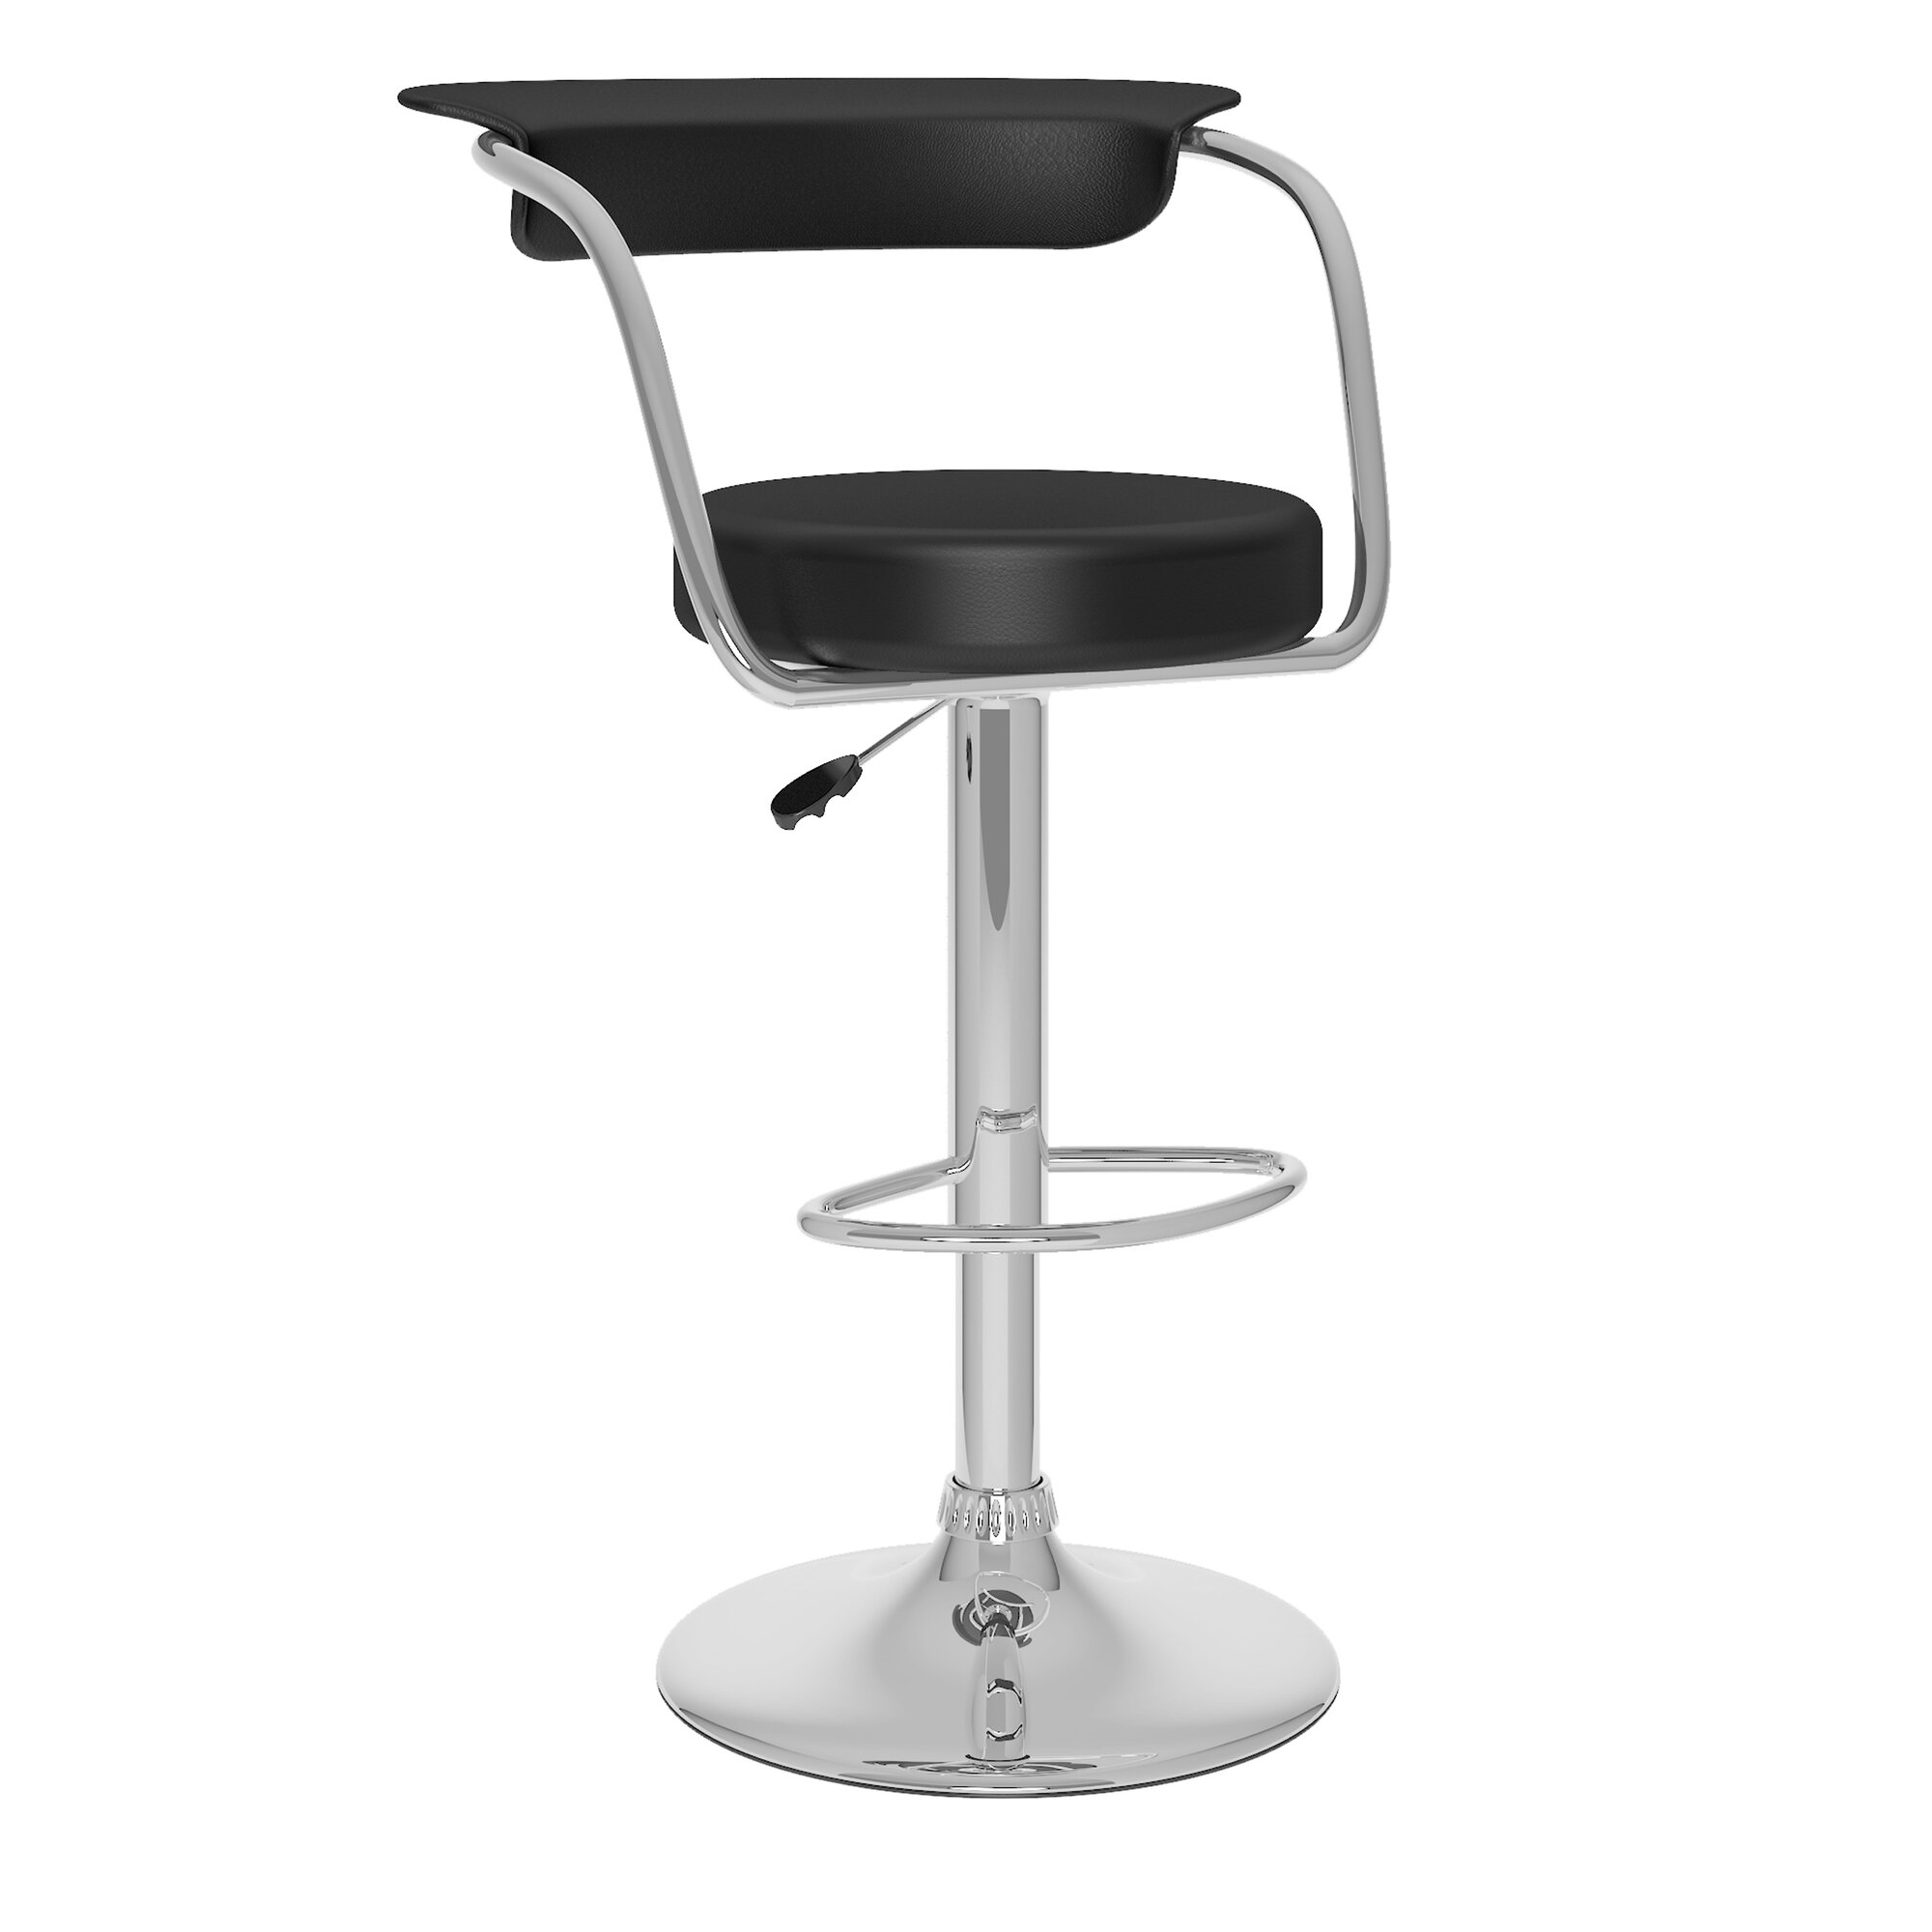 dCOR design CorLiving Adjustable Height Swivel Bar Stool  : CorLivingAdjustableHeightSwivelBarStool from www.wayfair.com size 2000 x 2000 jpeg 97kB